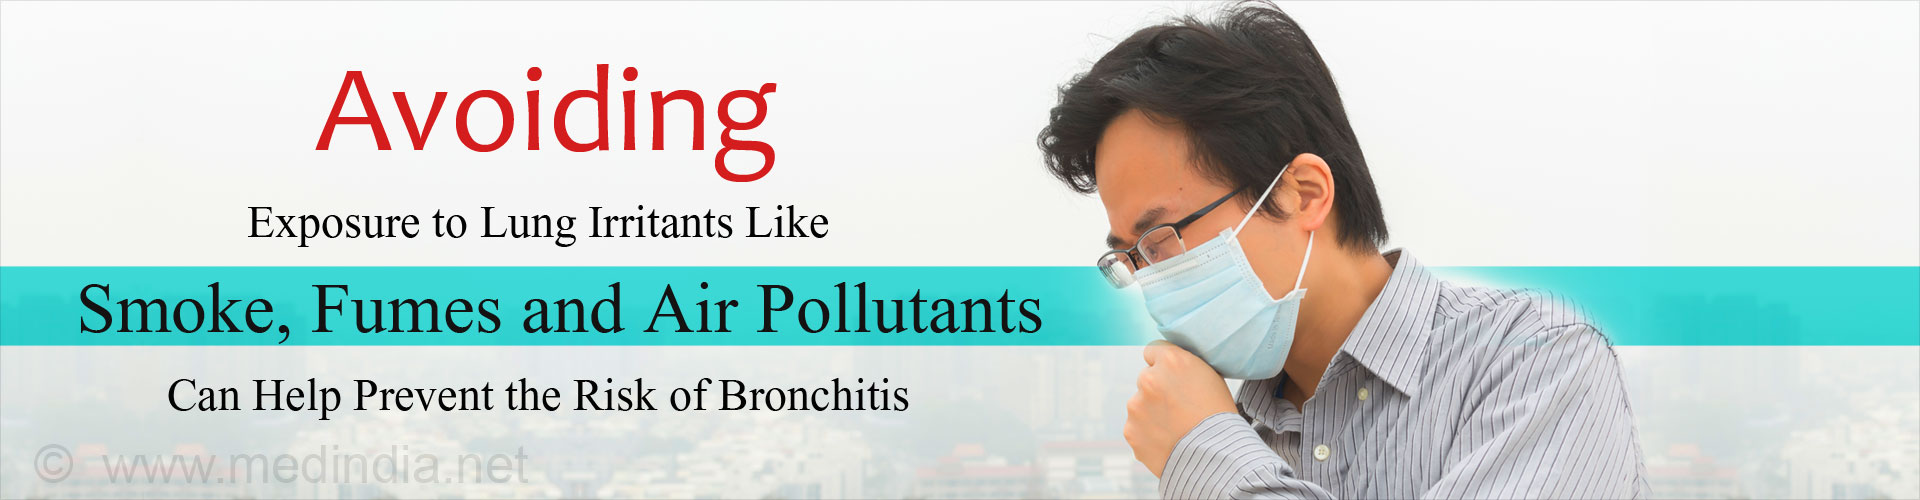 Avoiding Exposure to Lung Irritants Like Smoke, Fumes and Air Pollutants can help Prevent the Risk of Bronchitis